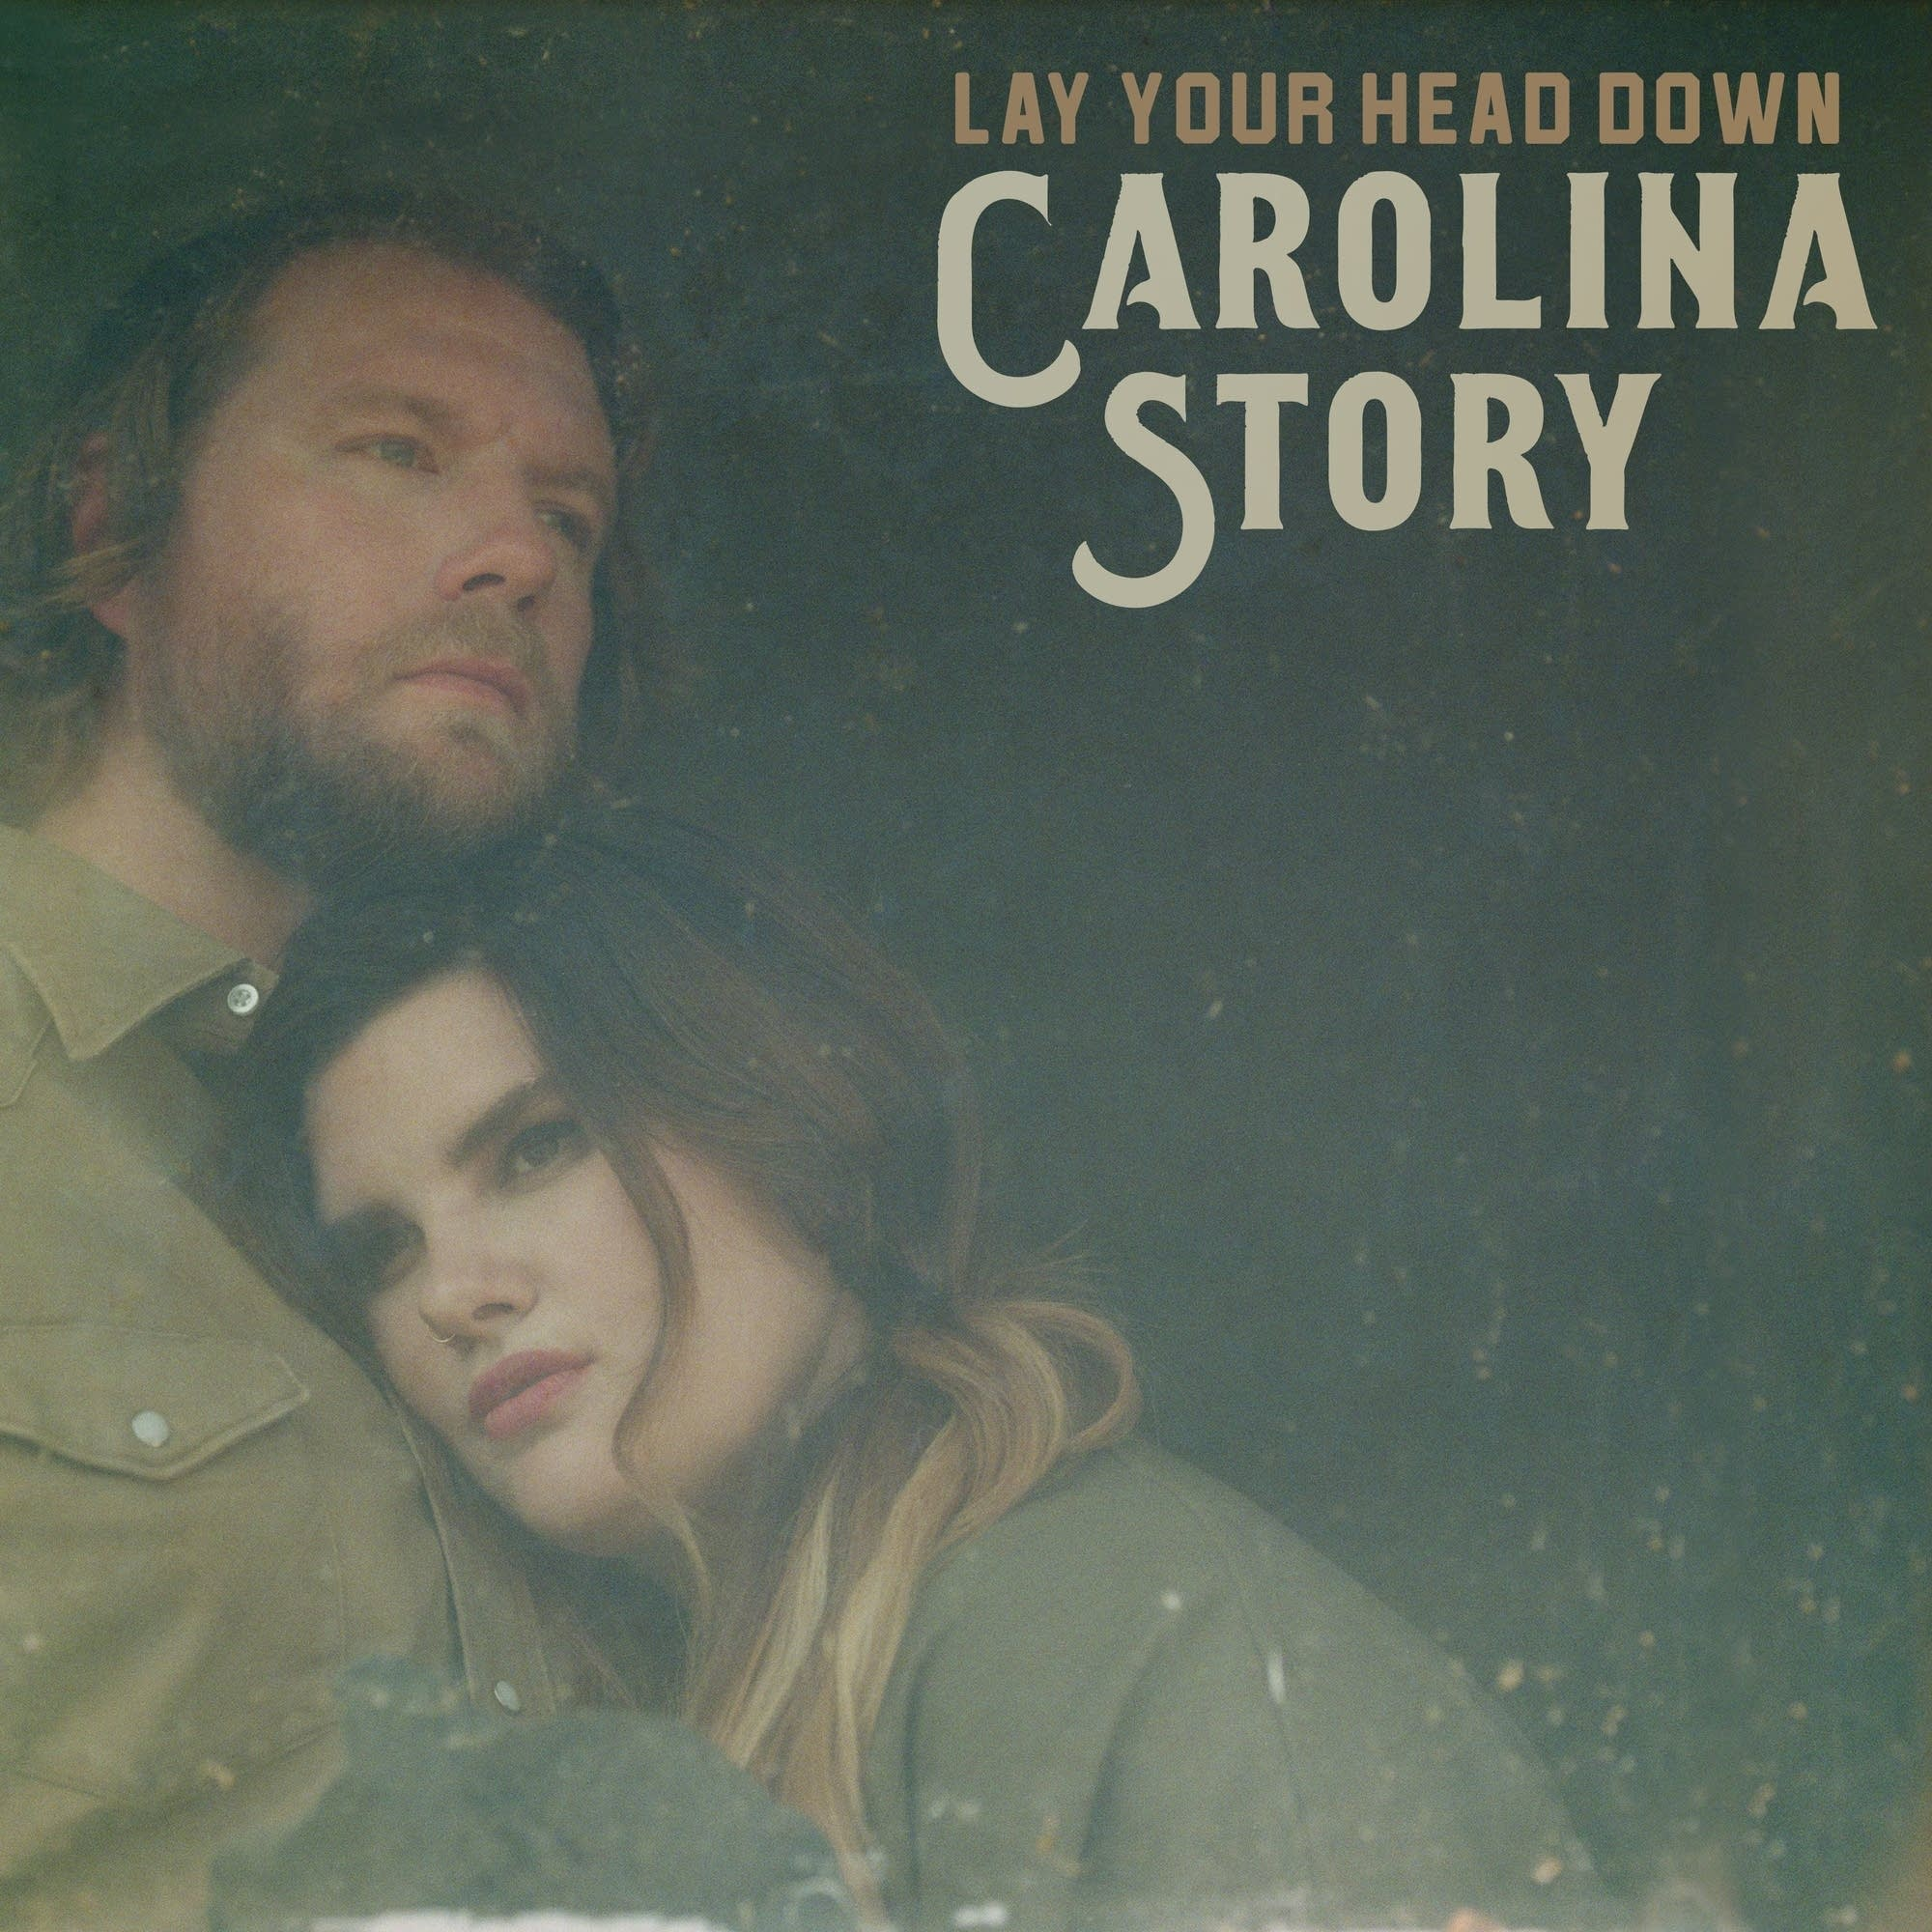 Carolina Story, 'Lay Your Head Down'